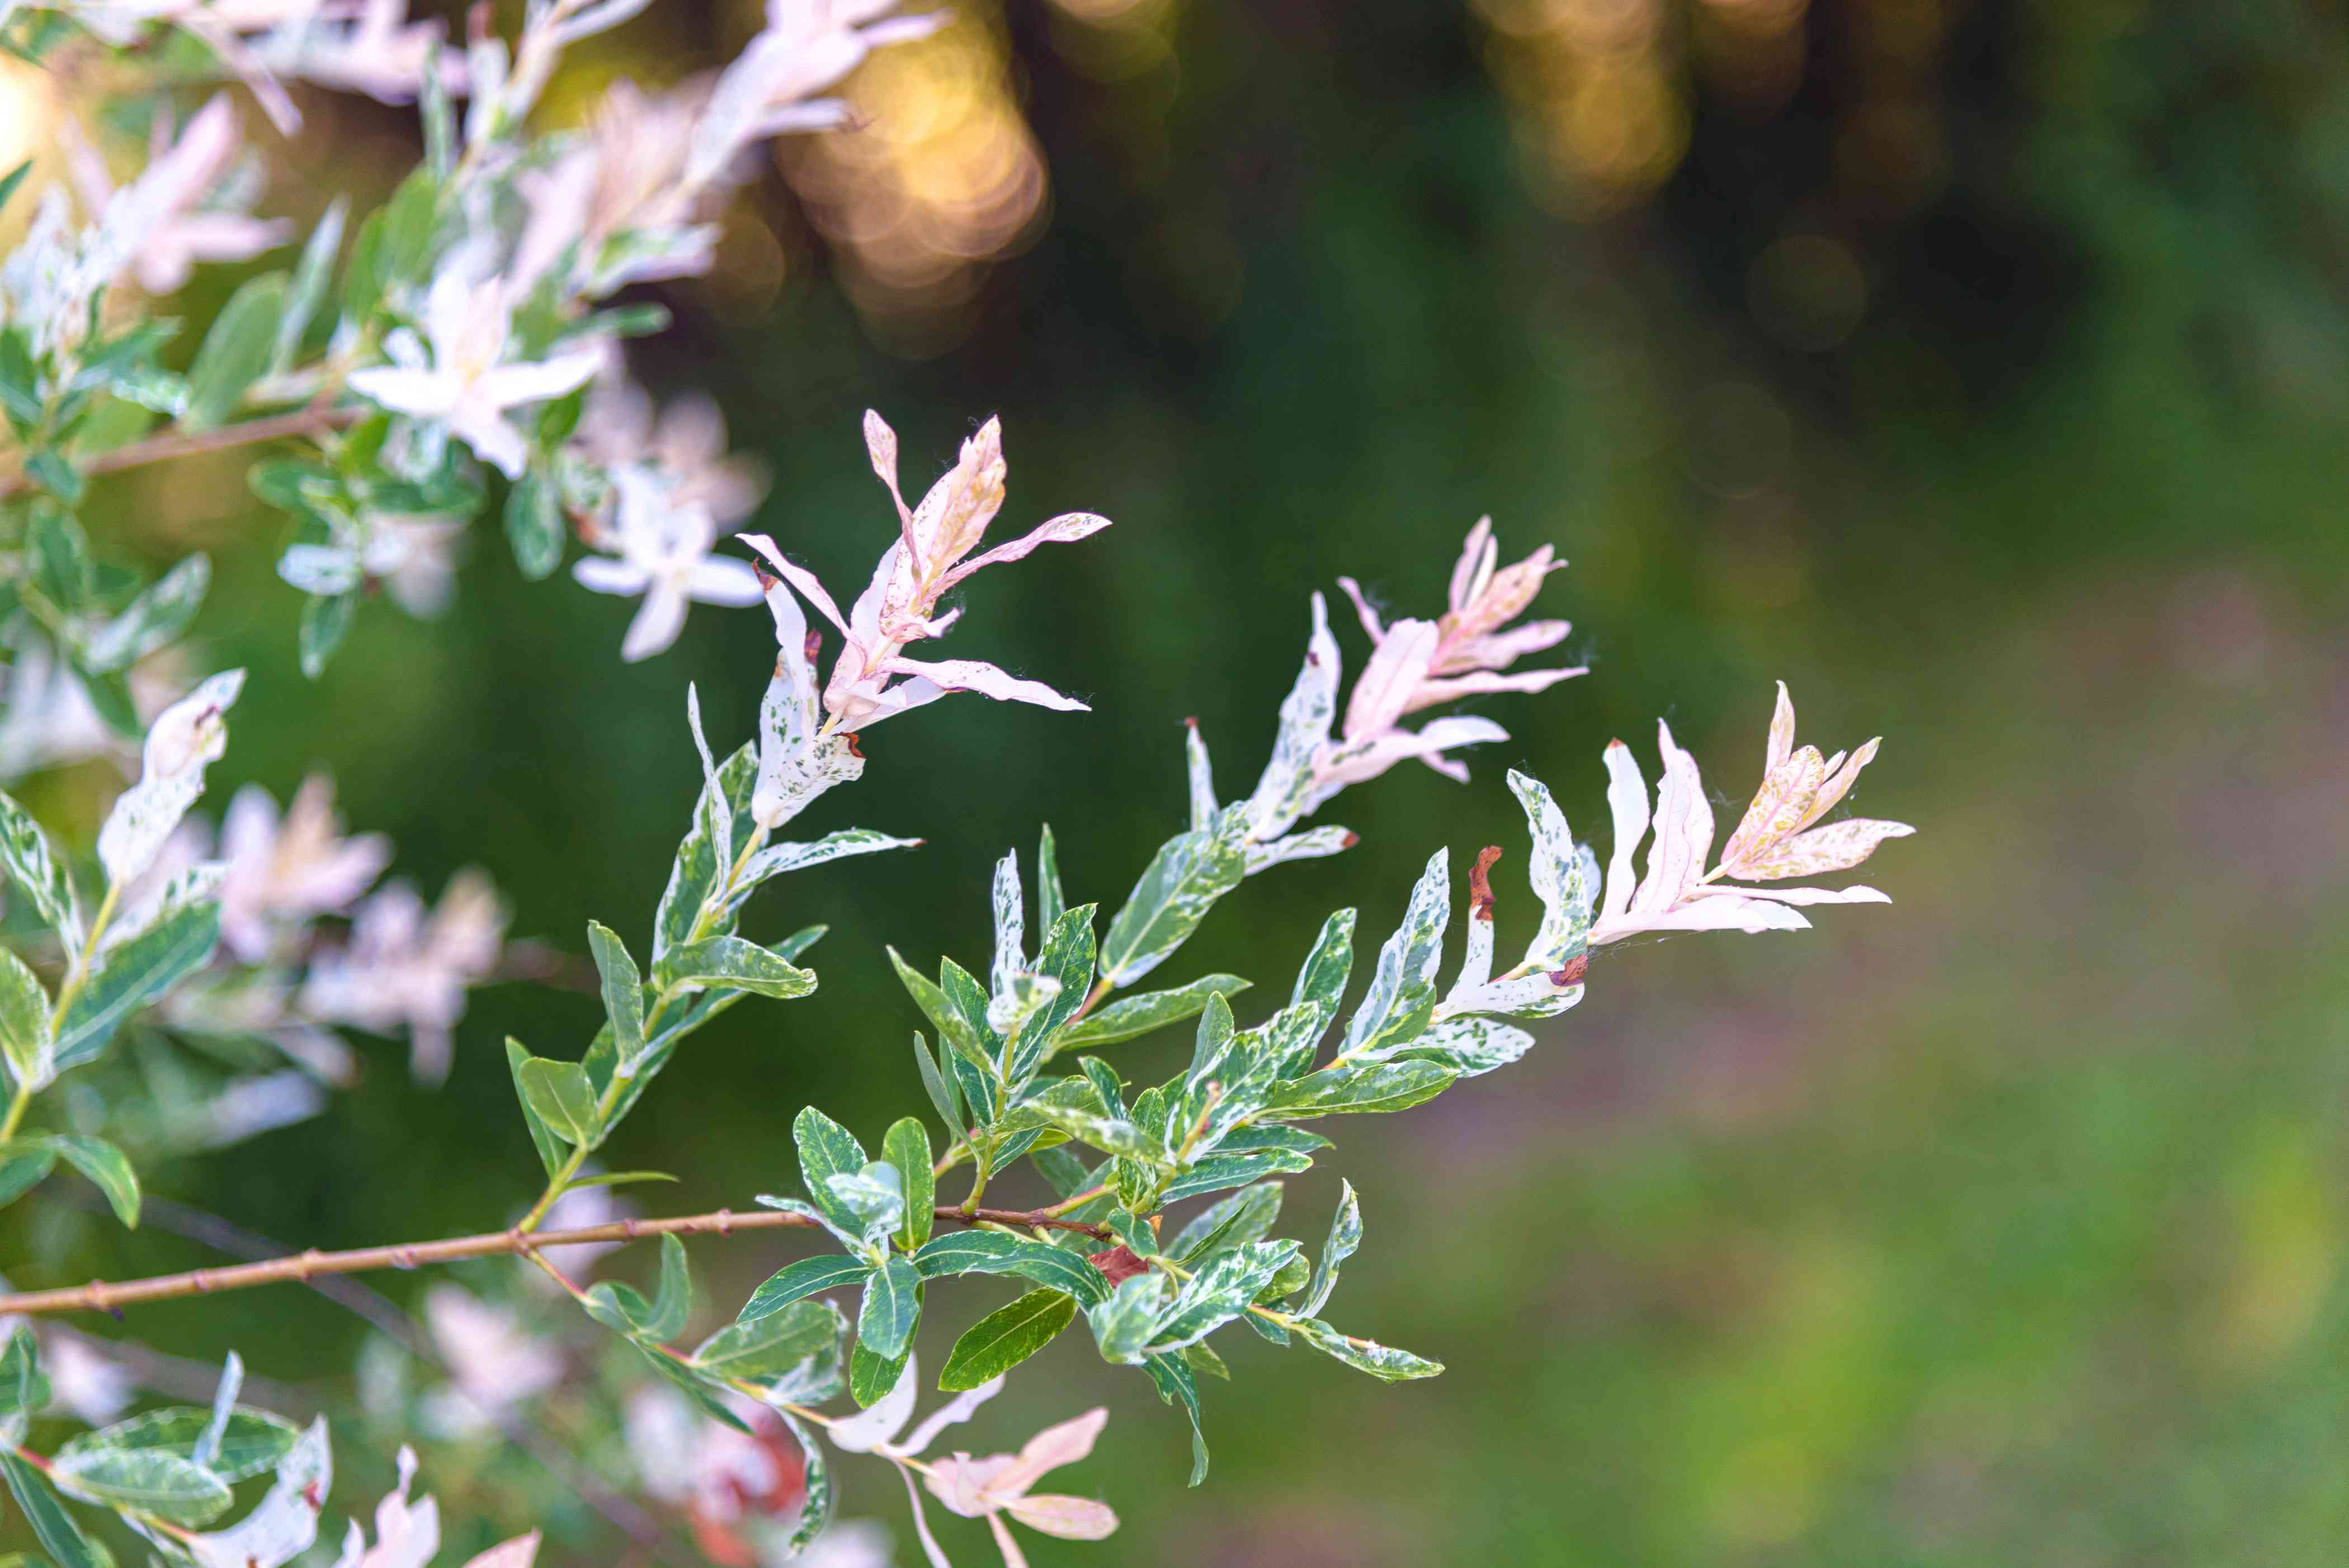 Flamingo willow plant branches with white and green variegated leaves on stem closeup